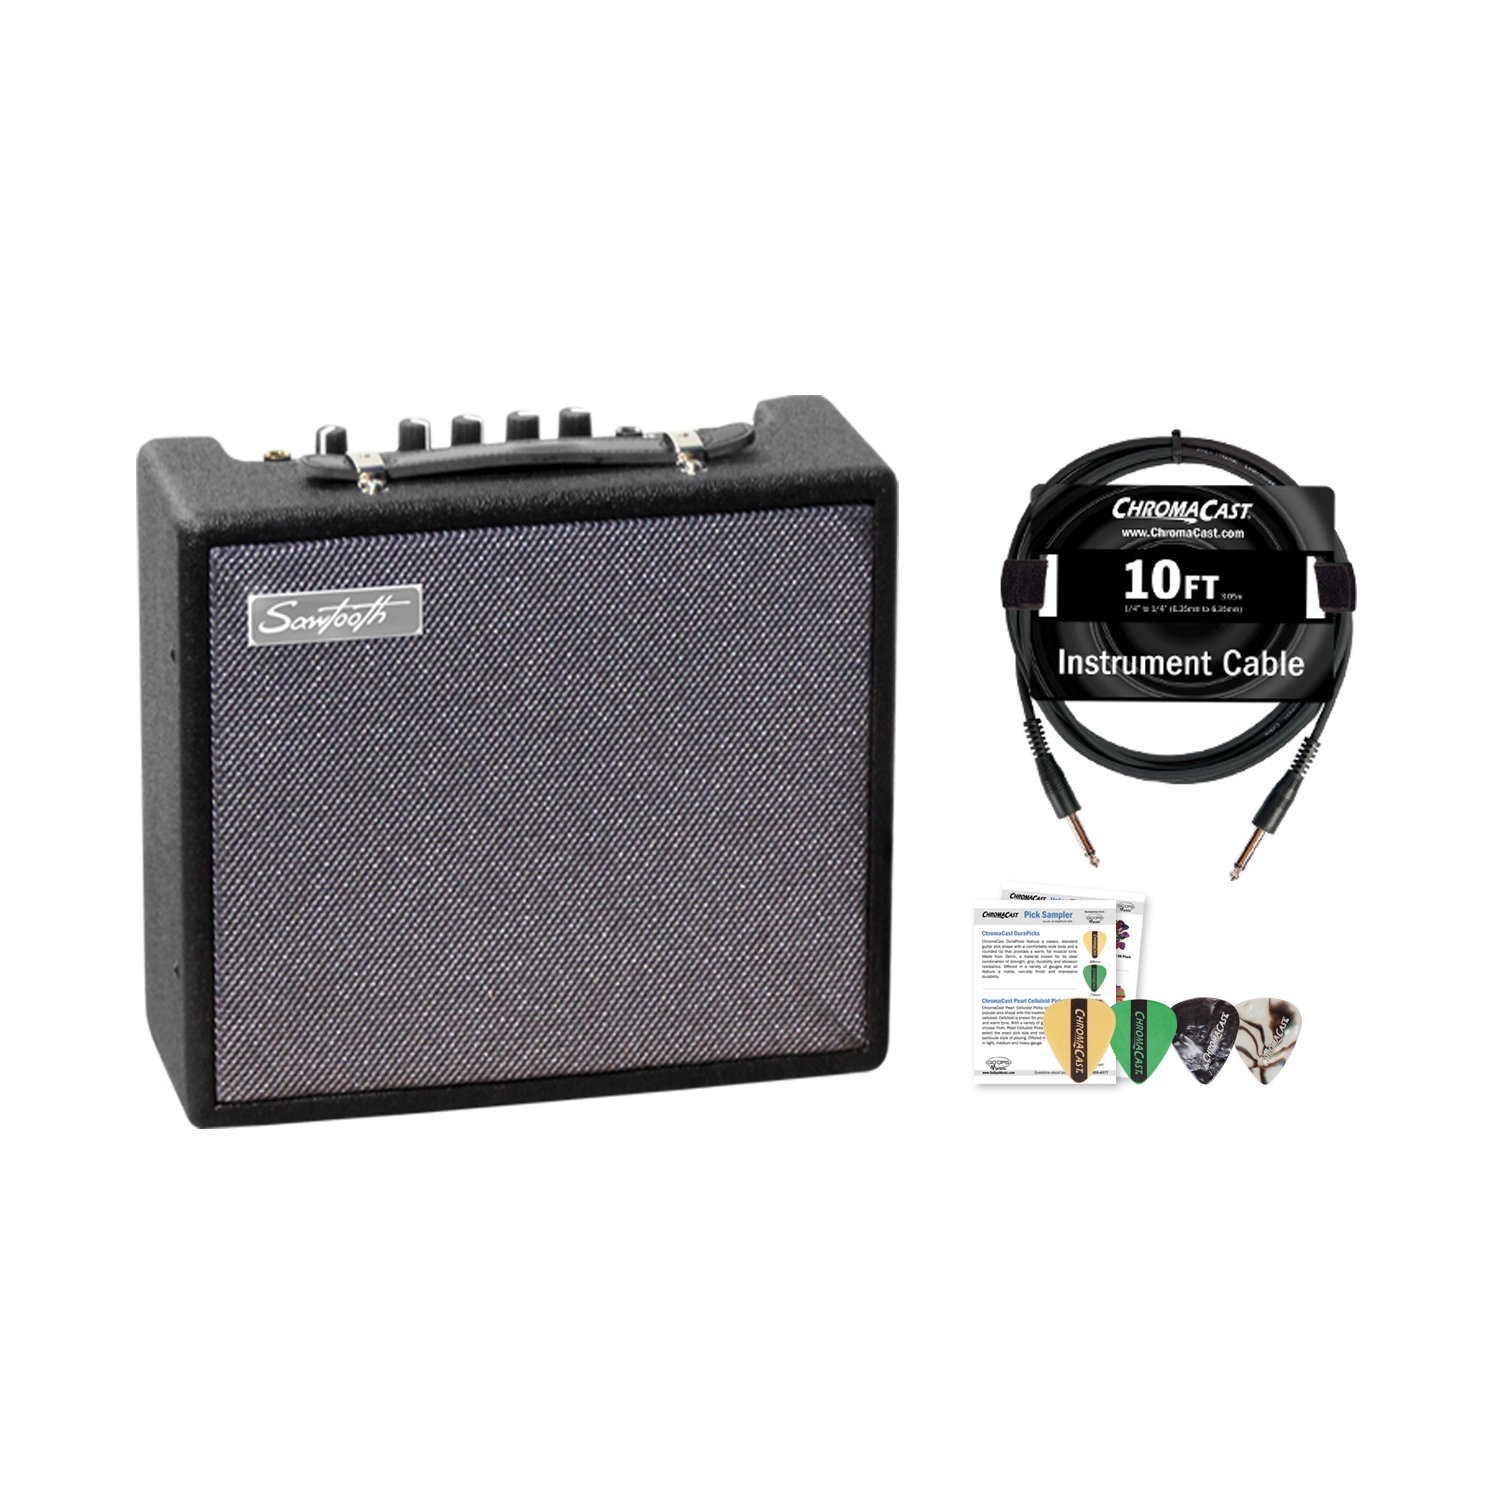 Sawtooth 10-Watt Electric Guitar Amp with Instrument Cable & Pick Sampler product image